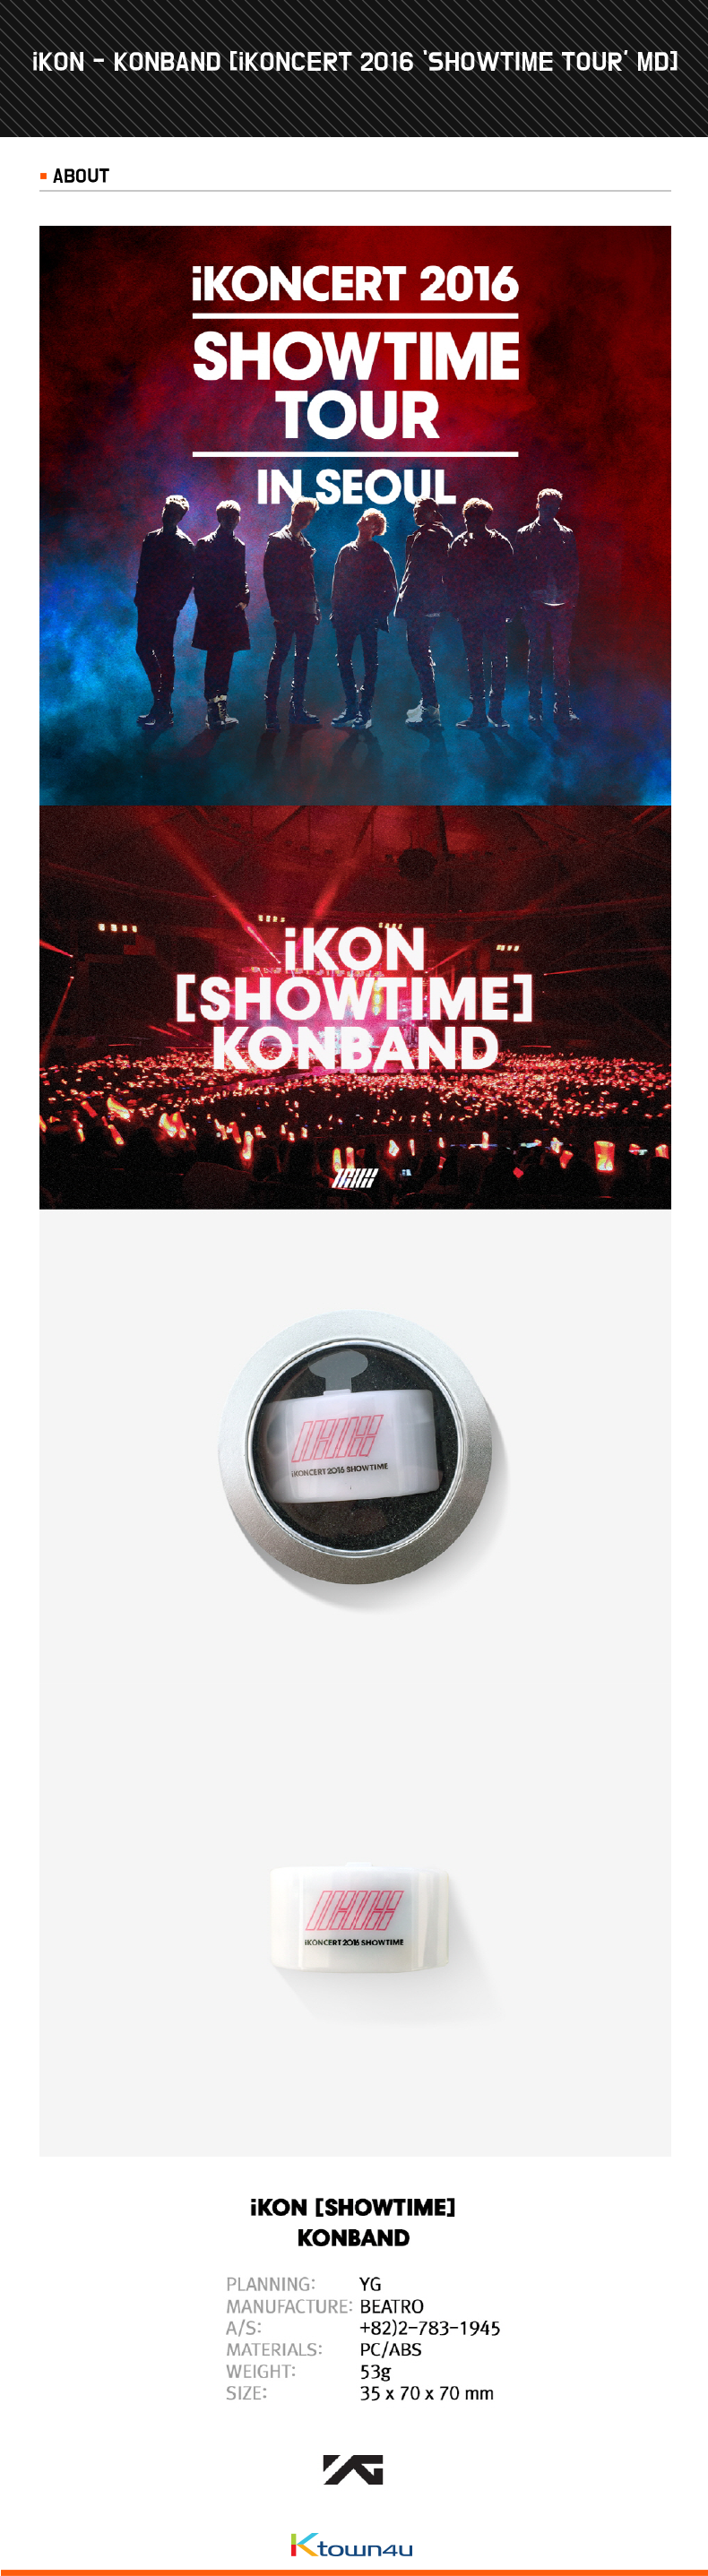 iKON - KONBAND [iKONCERT 'SHOWTIME TOUR' MD]